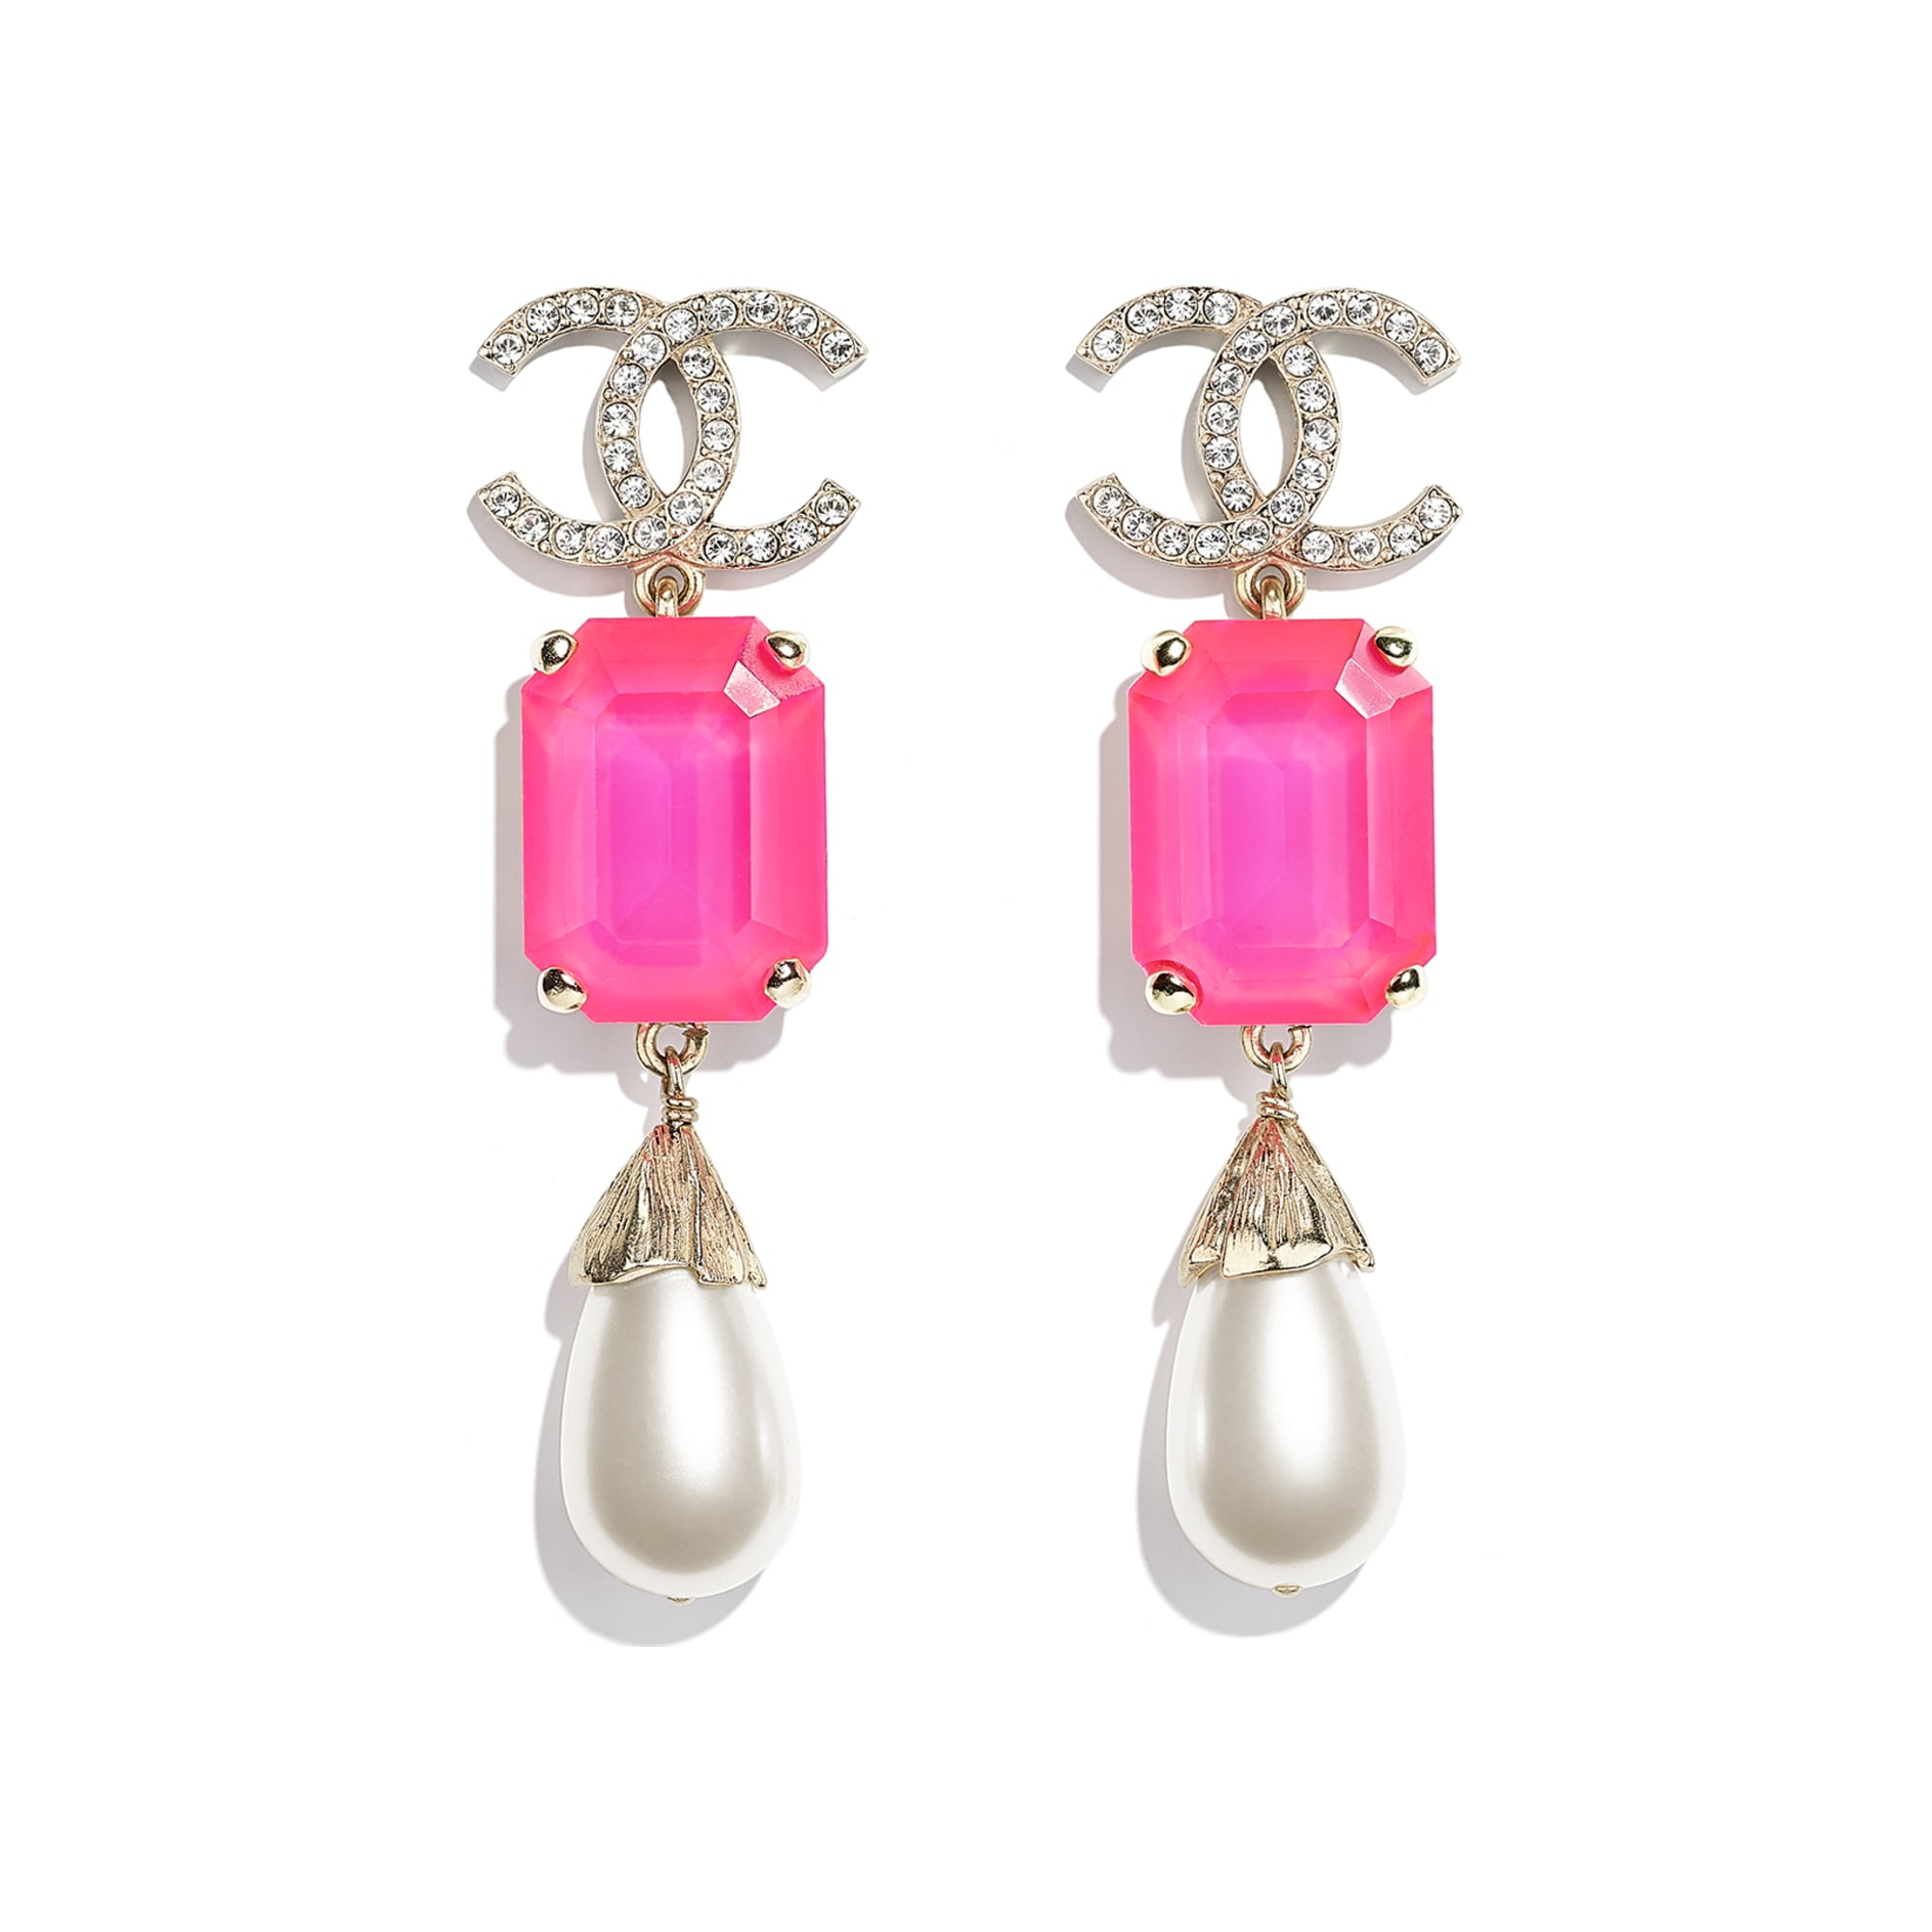 Earrings - Gold, Pink & Pearly White - Metal, Imitation Pearls & Diamanté - CHANEL - Default view - see standard sized version